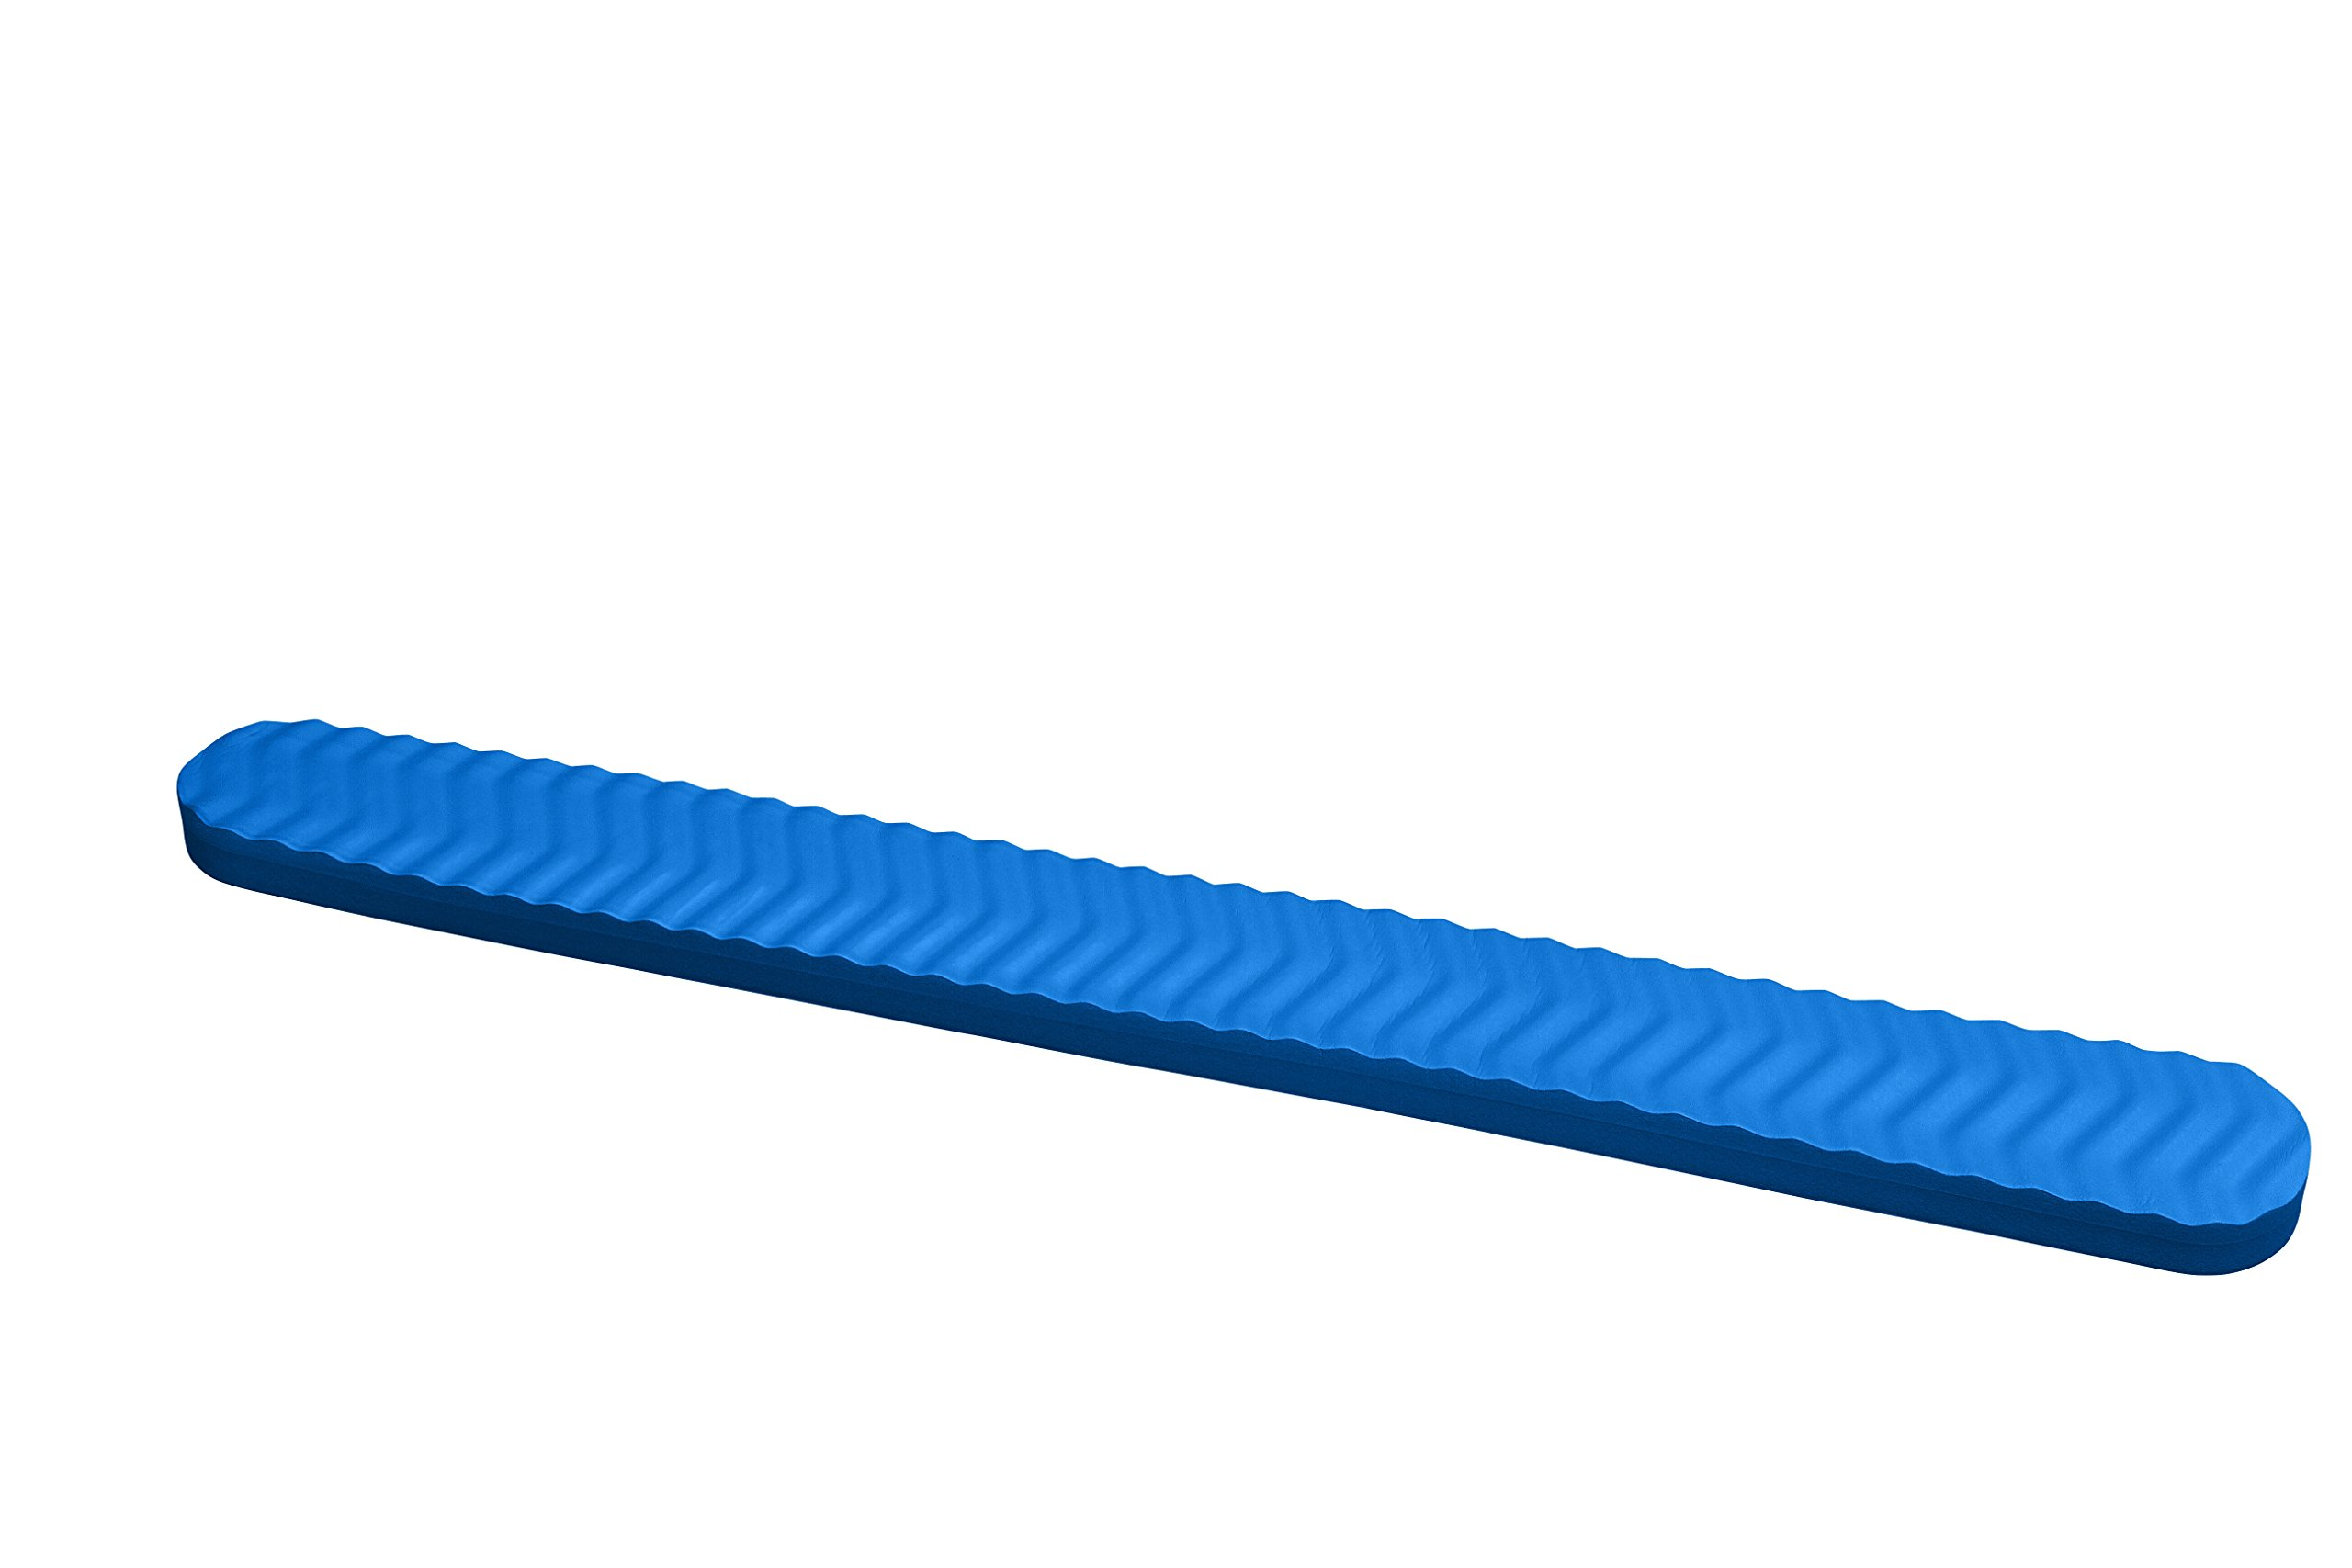 Drift and Escape NT6002-BL Luxury Pool Noodle, Blue, 43.7'' L x 4.3'' W by Drift and Escape